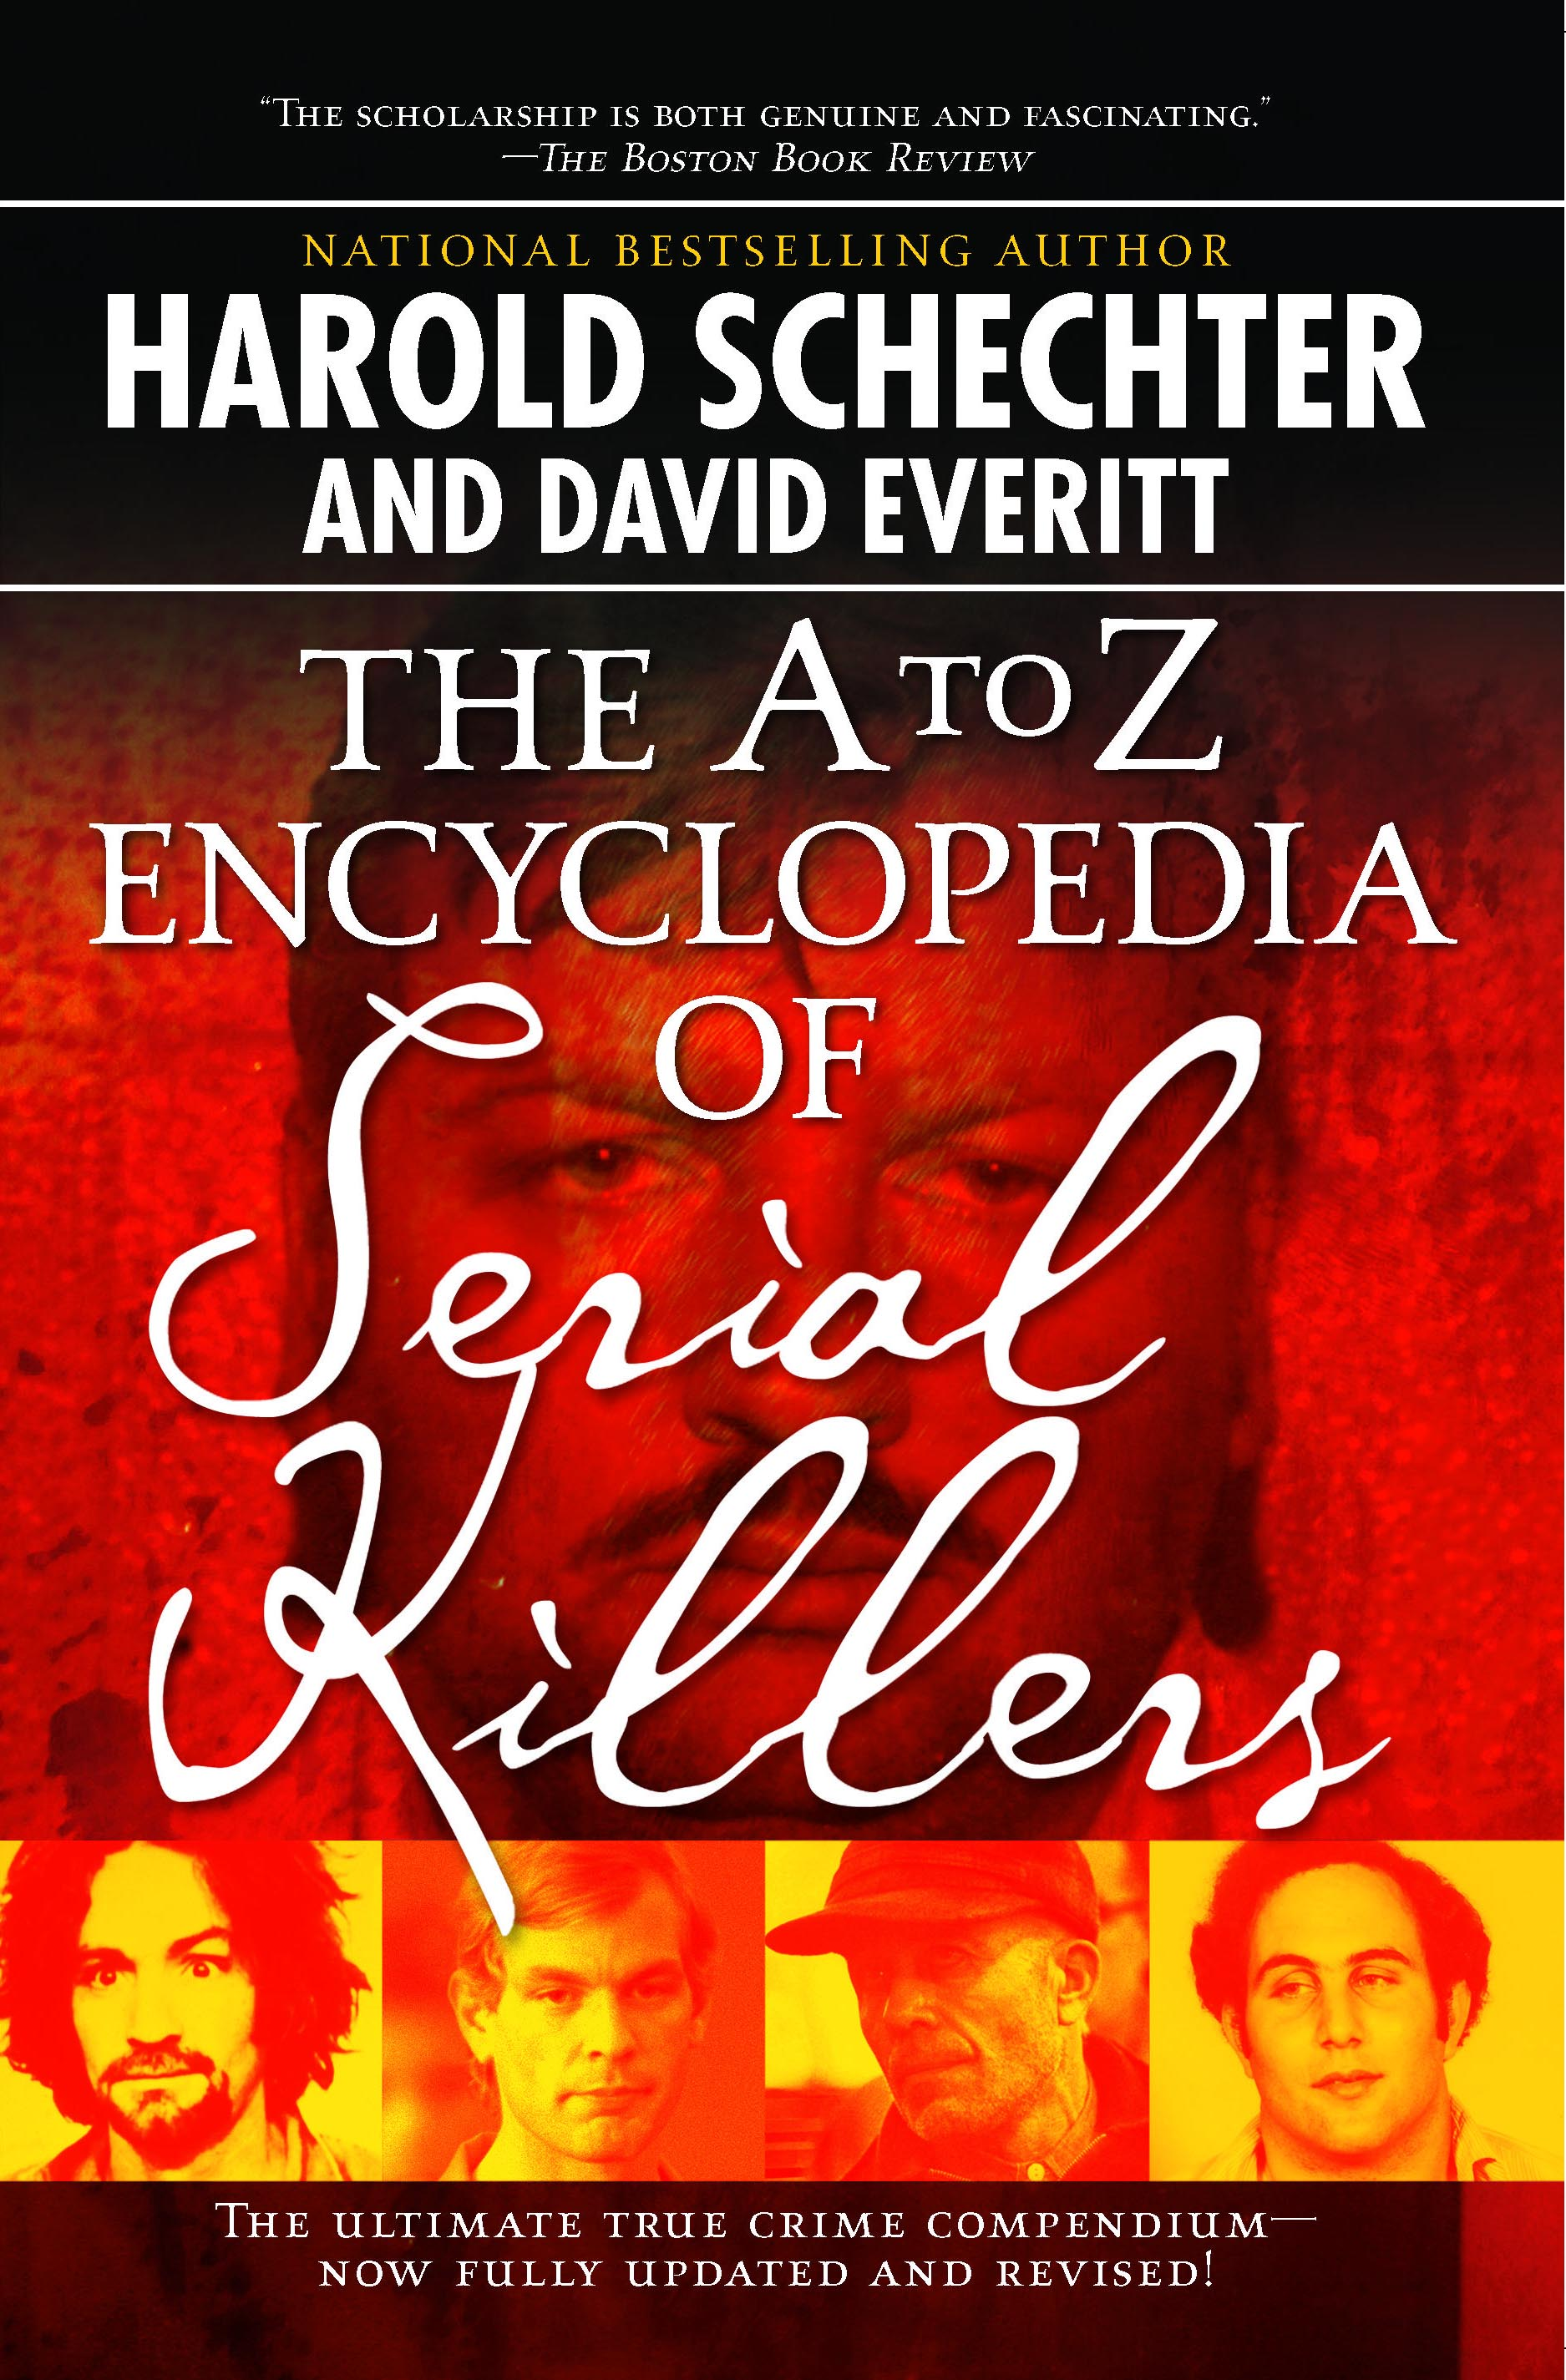 The A to Z Encyclopedia of Serial Killers | Book by Harold